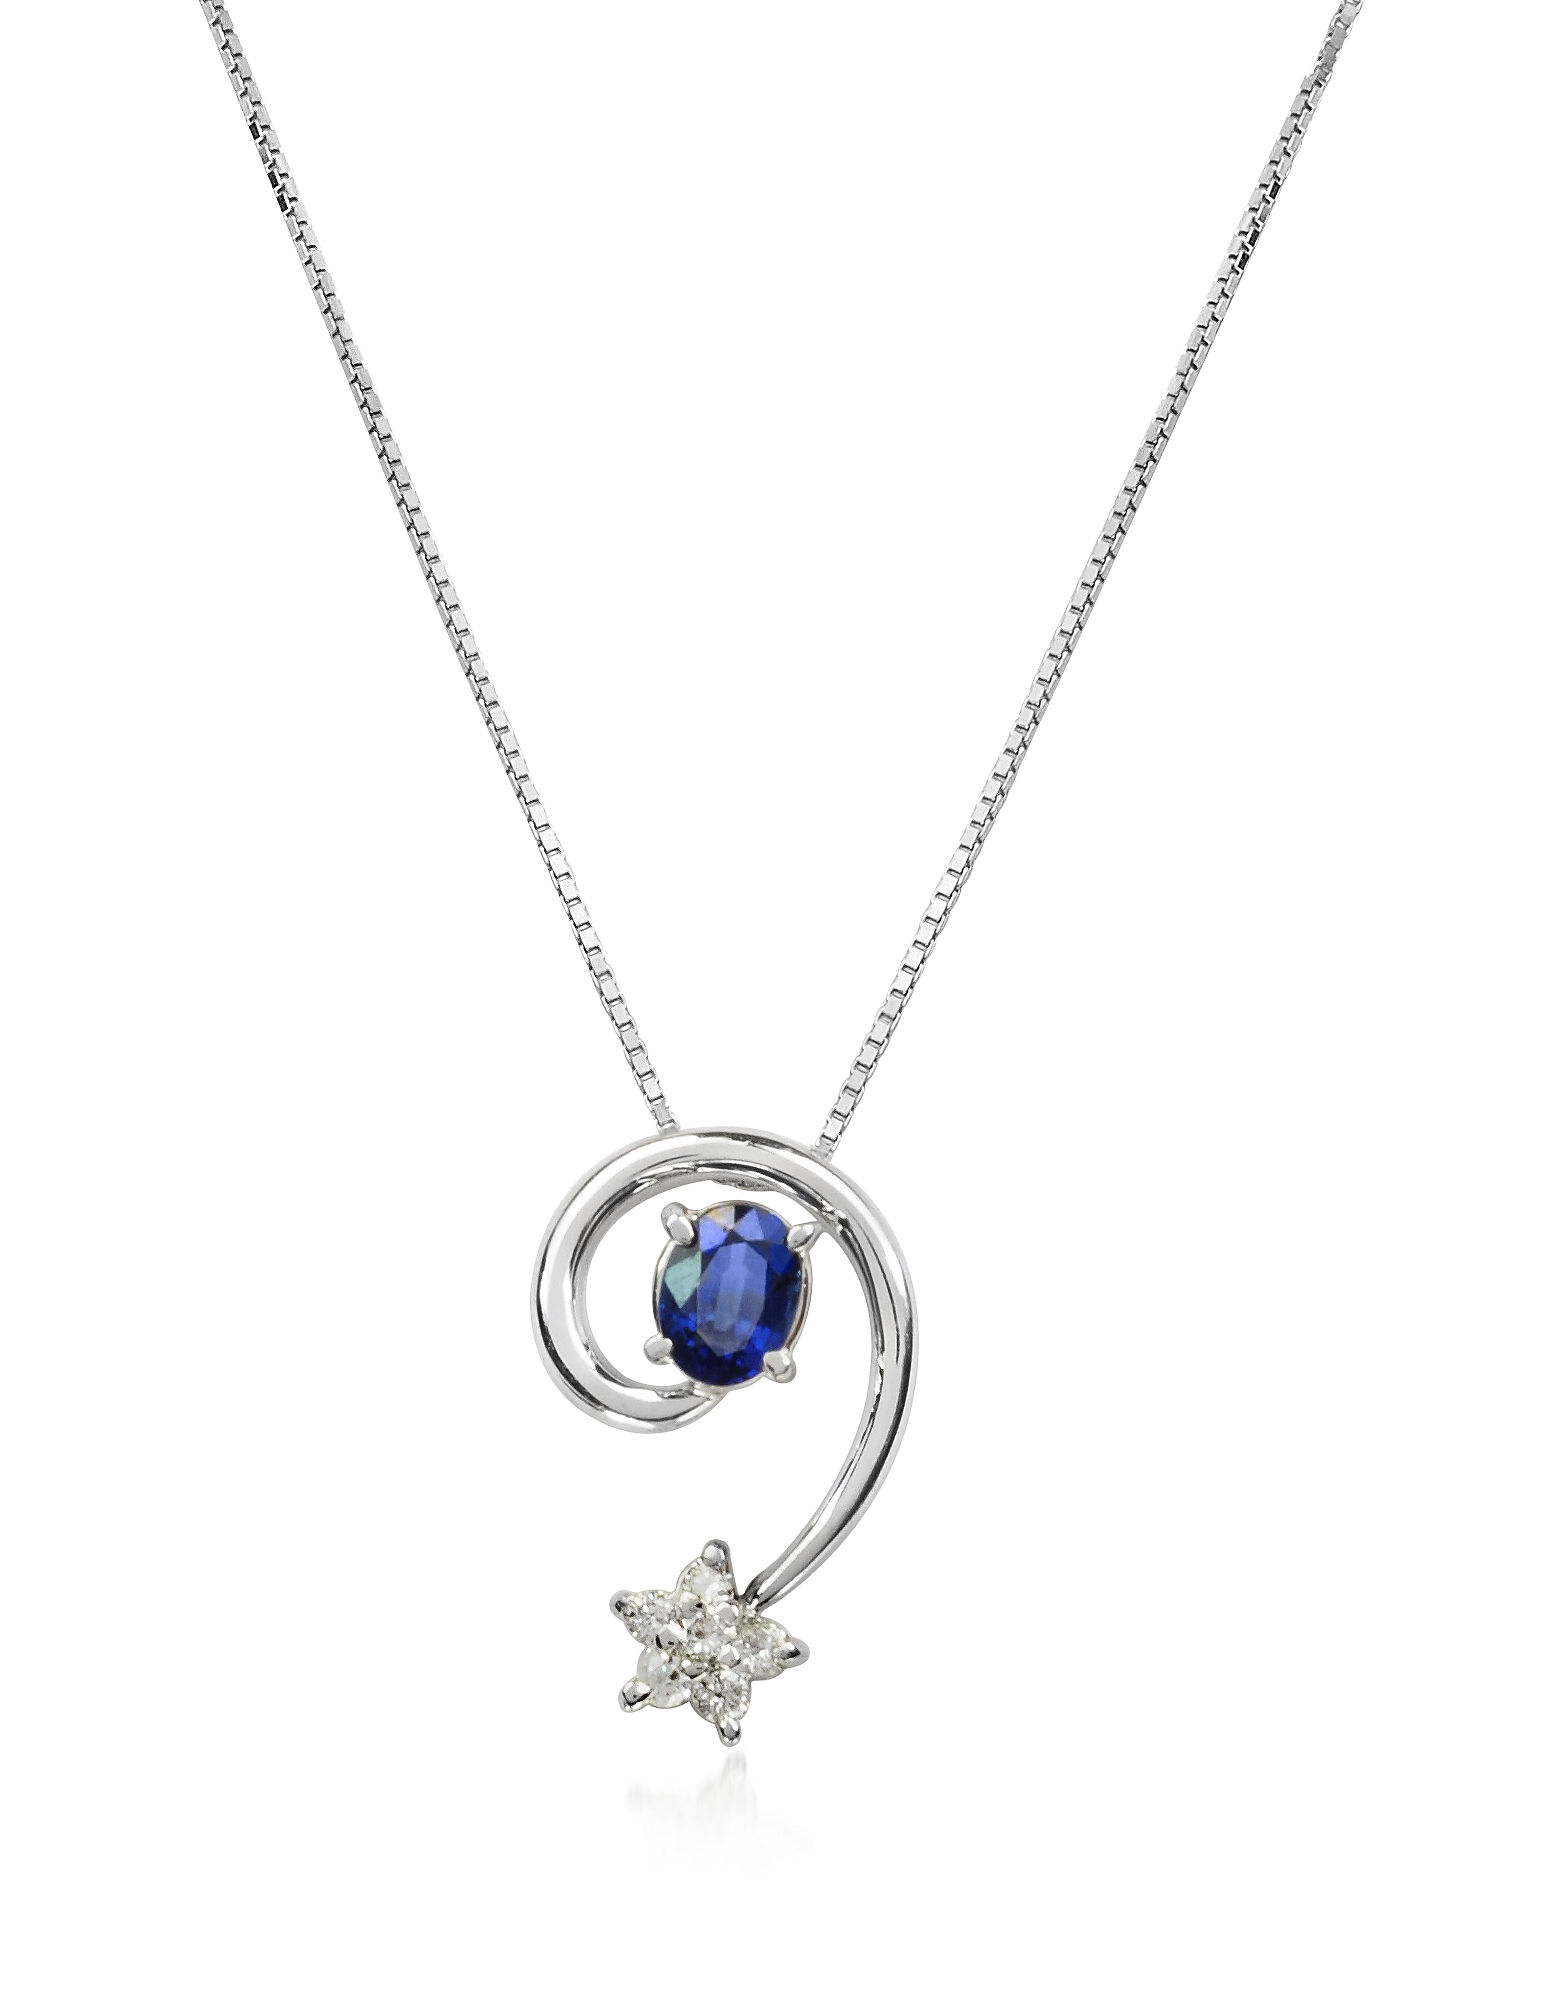 Incanto Royale Necklaces, Sapphires and Diamond Star 18K Gold Pendant Necklace